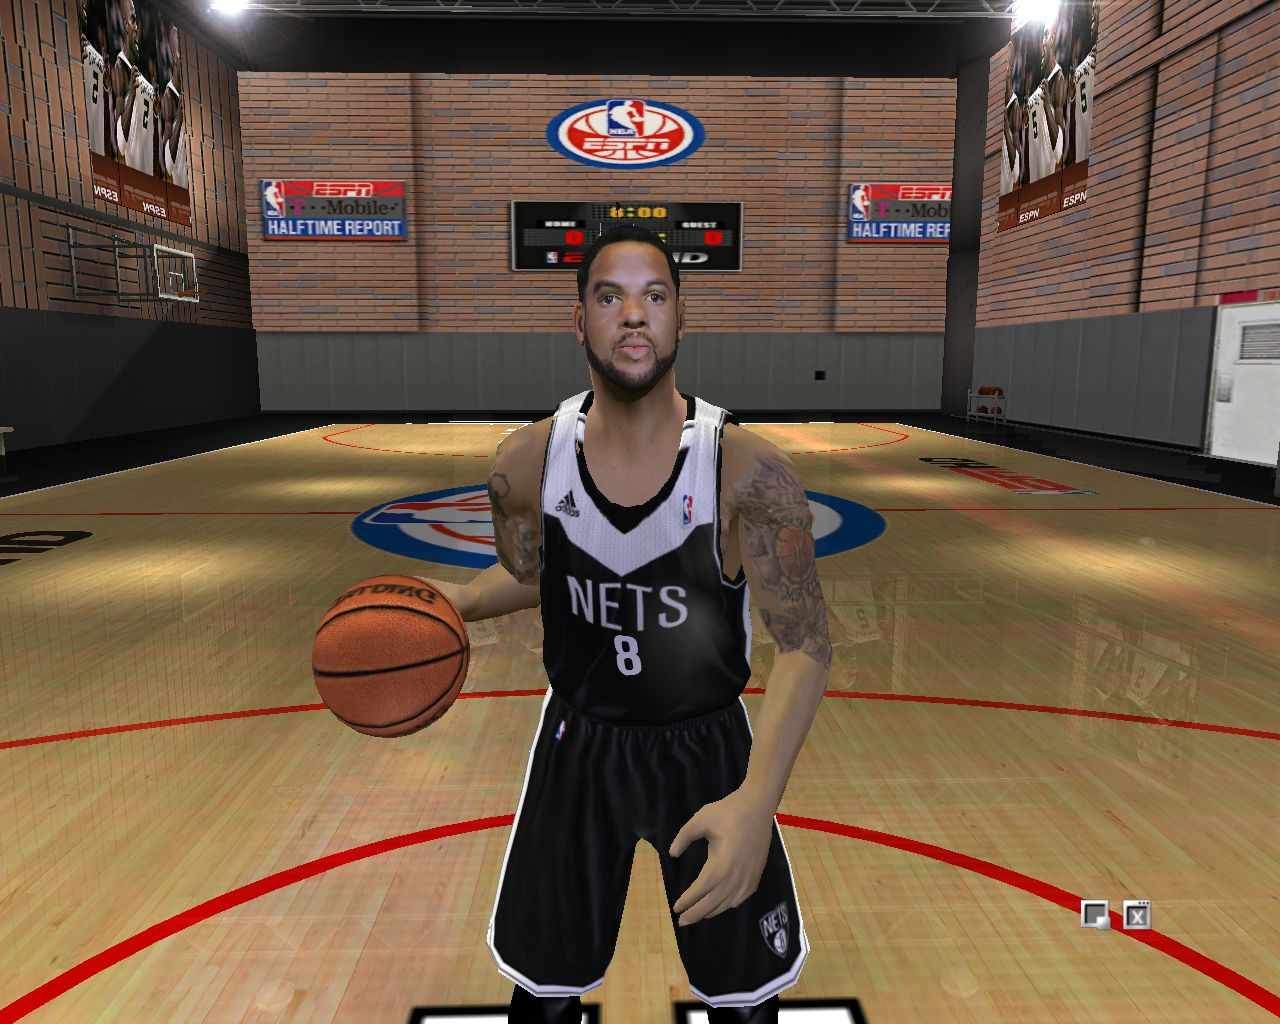 Brooklyn Nets Alternate Road Jersey 2012/2013